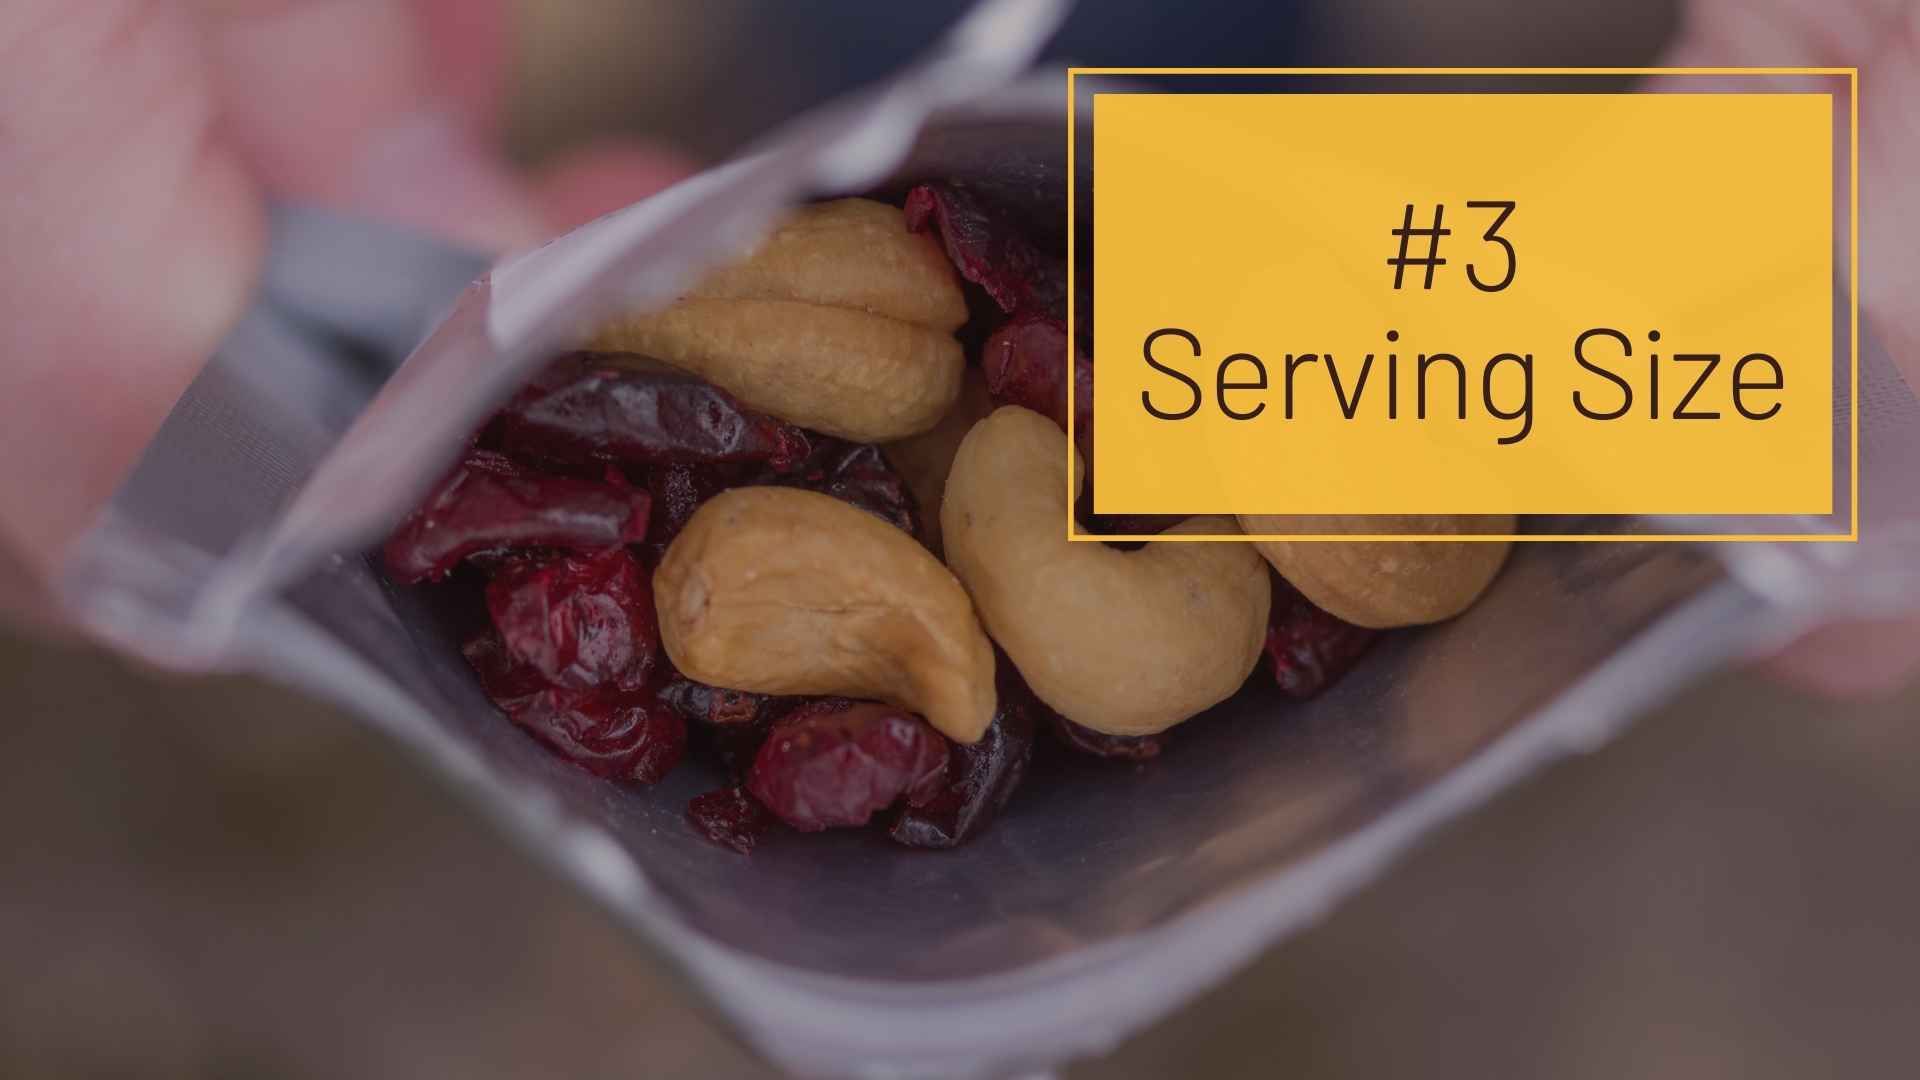 #3 Serving Size